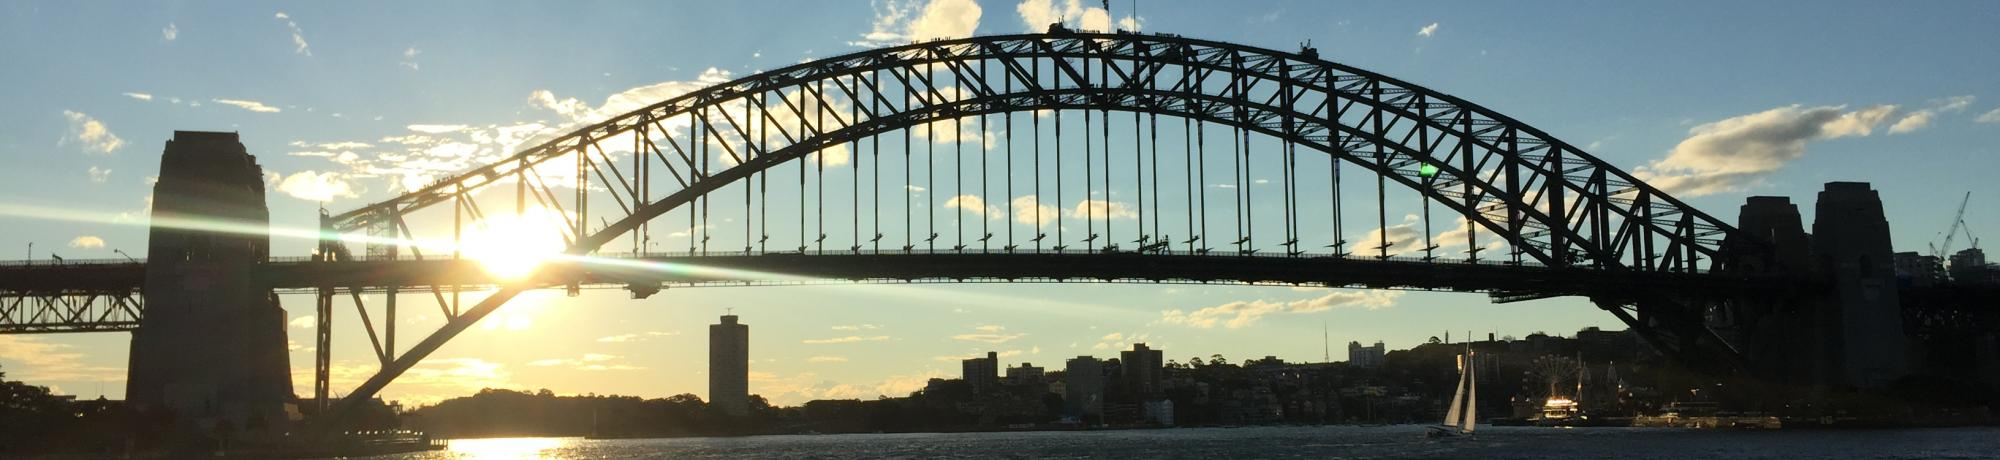 UC Davis Study Abroad, Summer Internship Abroad Australia, Engineering in Sydney Program, Header Image, On Site Page